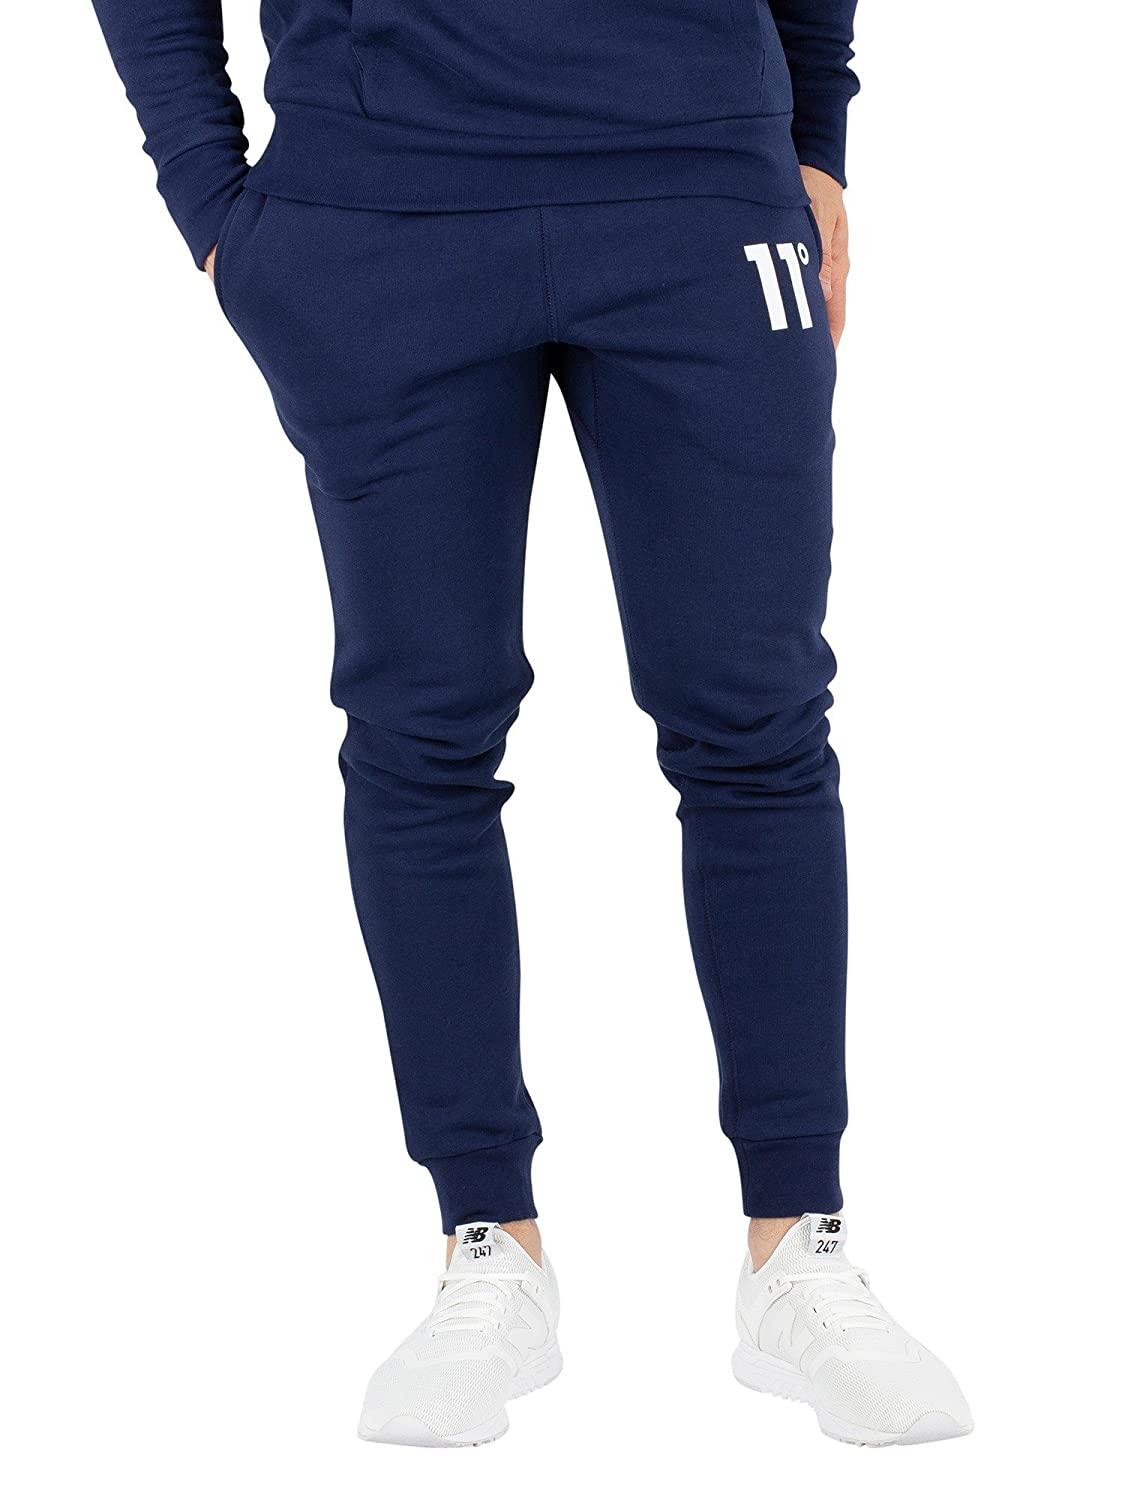 11 Degrees Core Joggers Navy